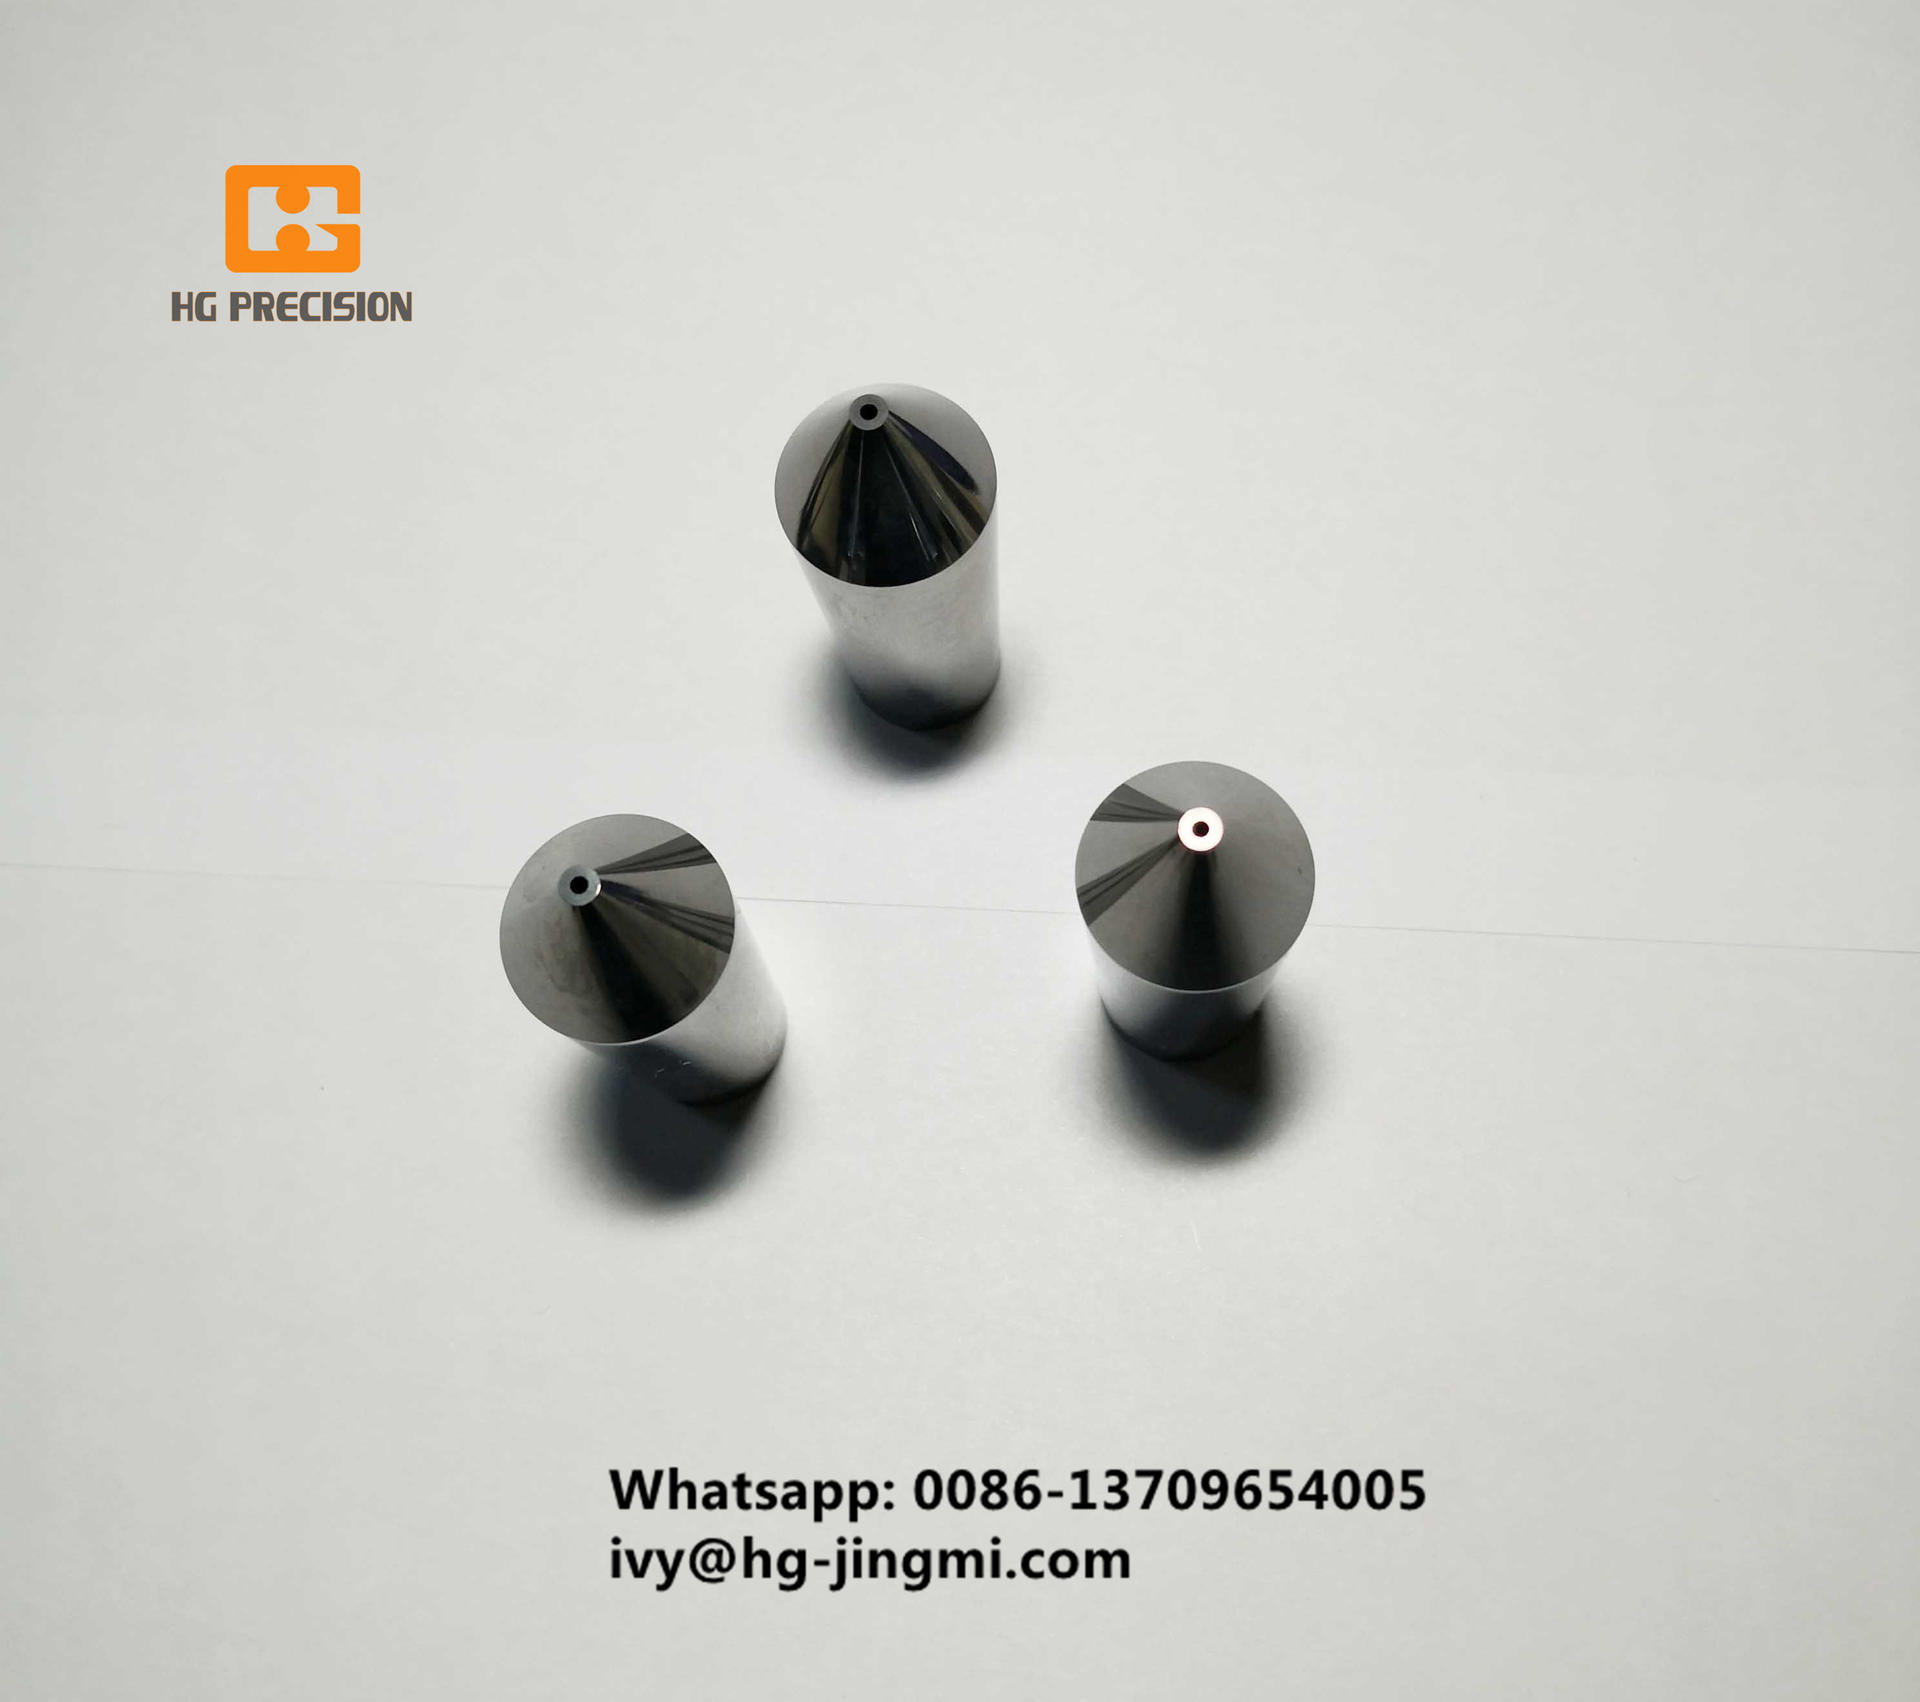 Nipple Die Polishing Carbide Parts-HG